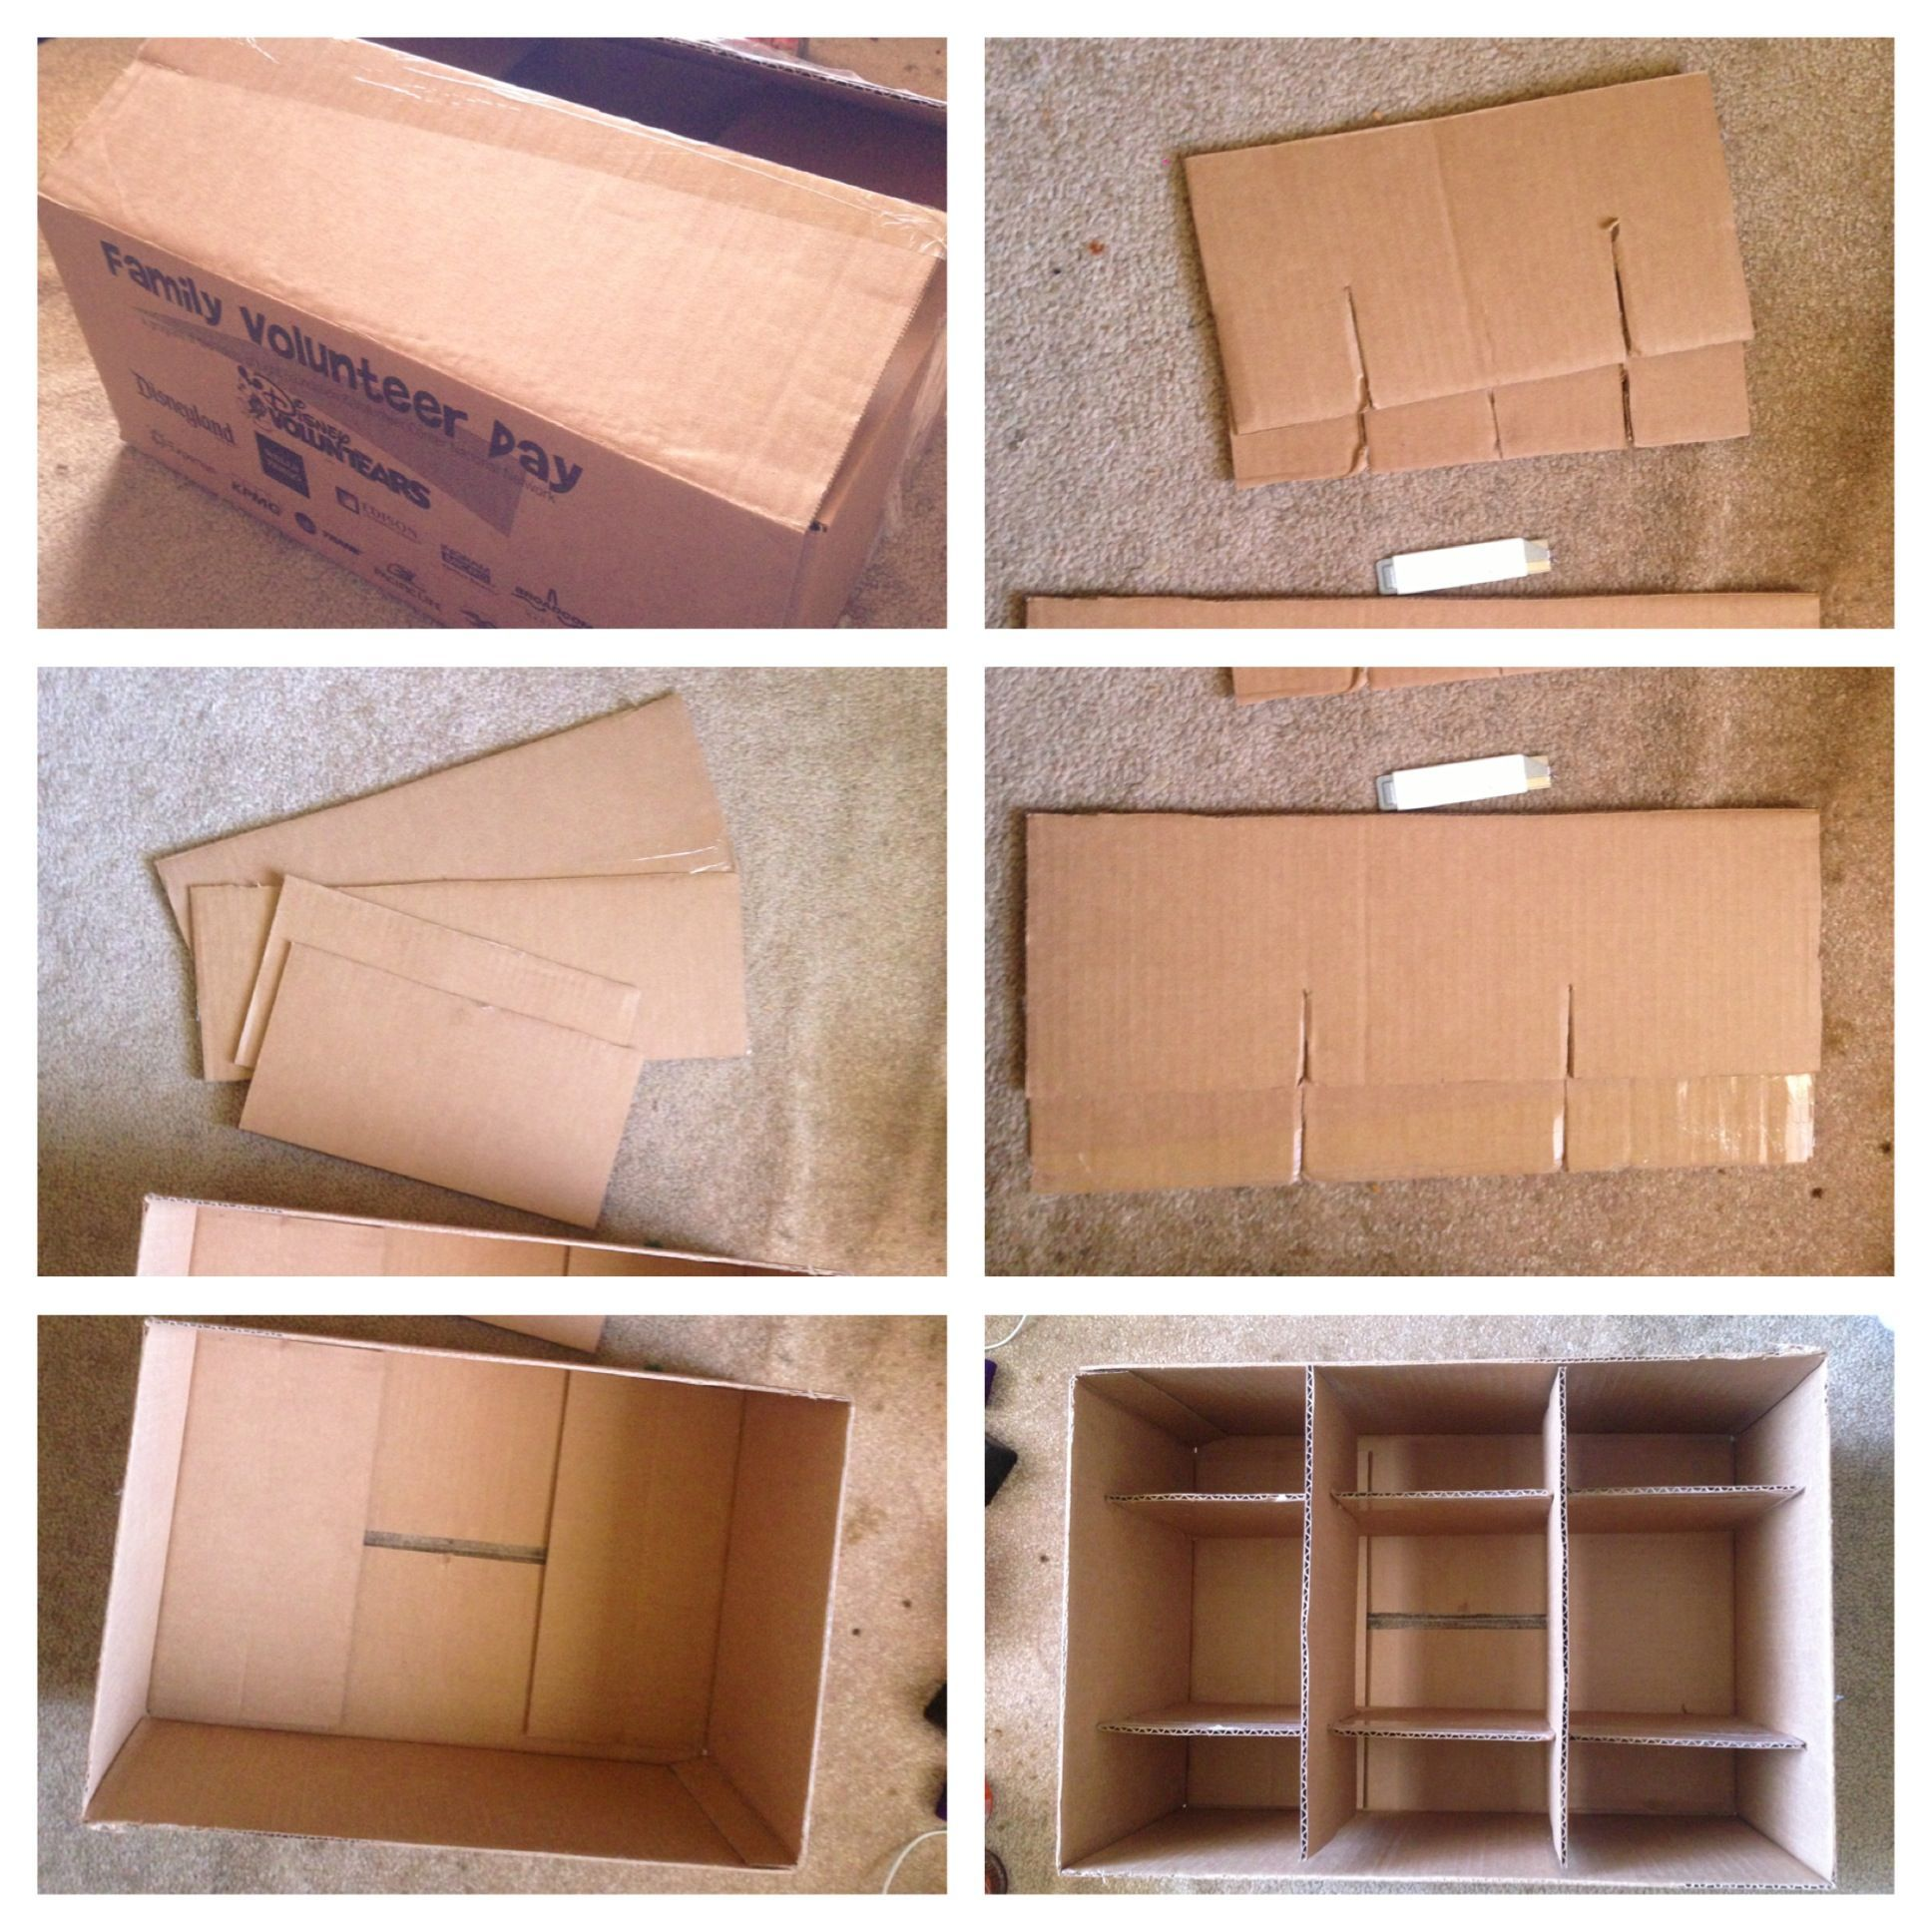 Diy Storage Container Ideas Making A Storage Box With Dividers Using Just A Cardboard Box And